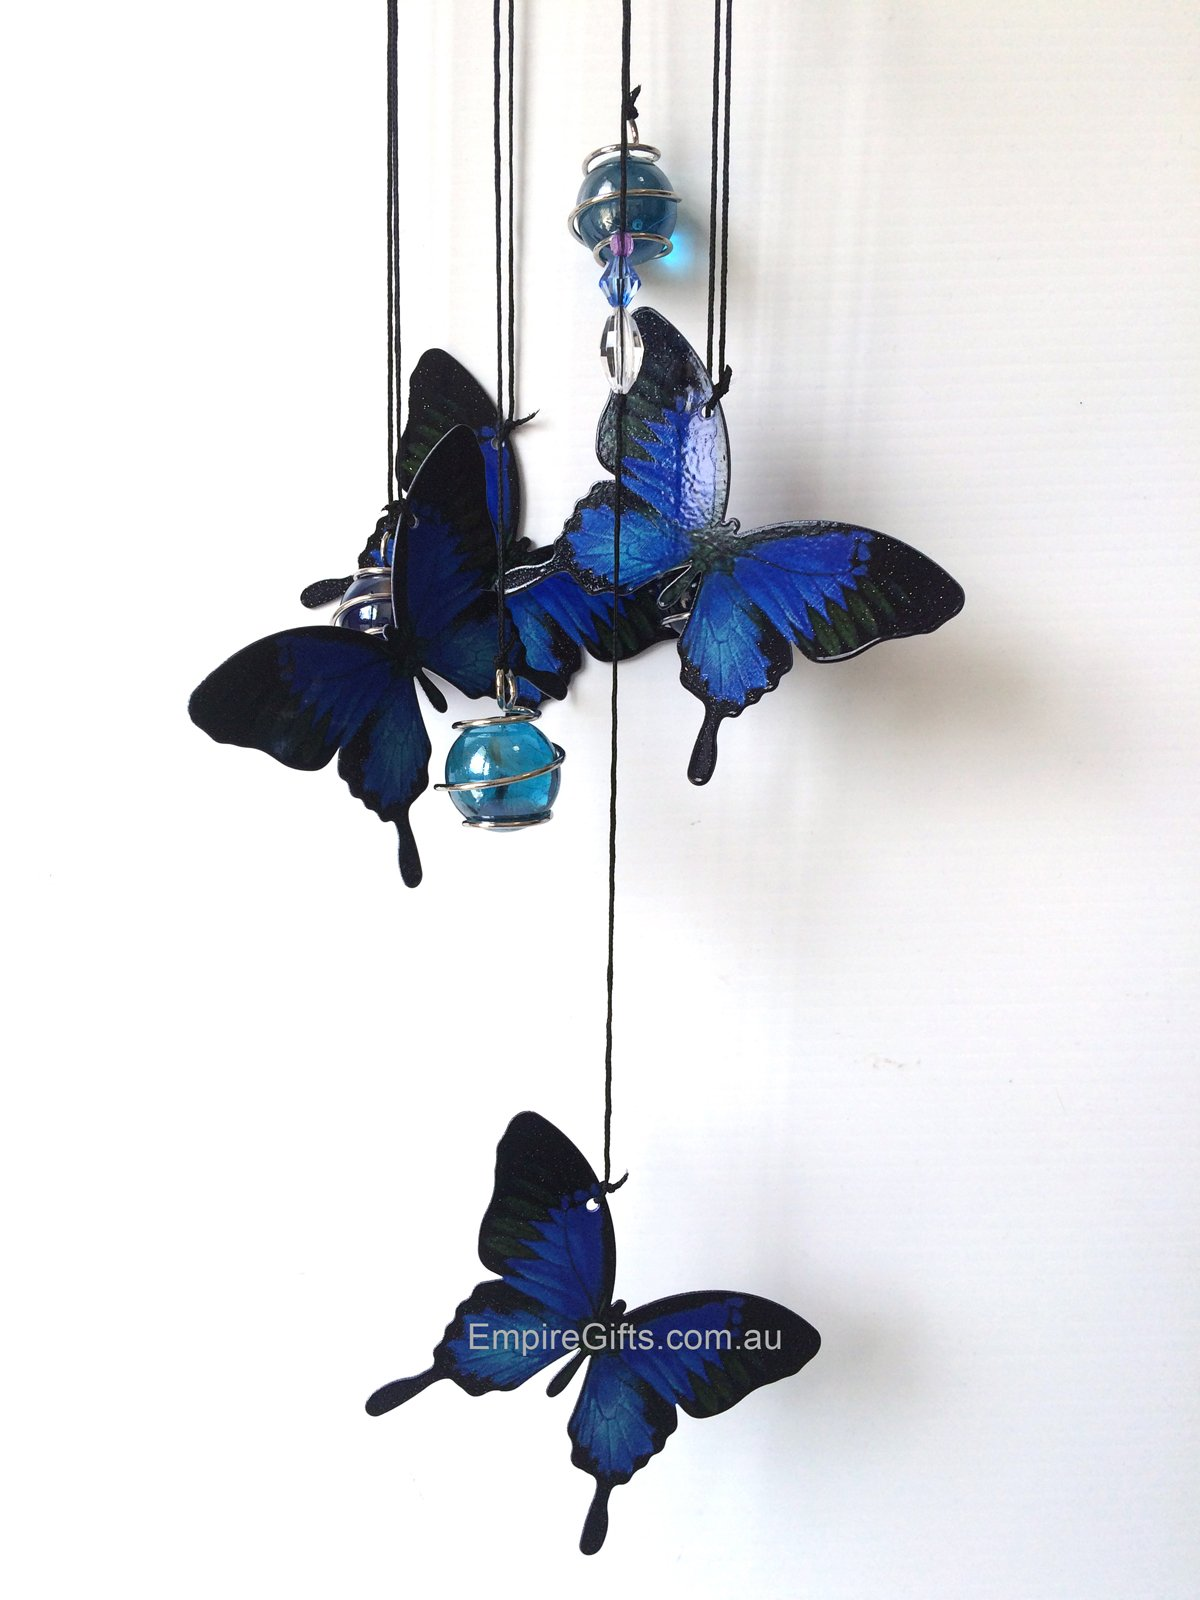 1 X Butterfly Blue Ulysses Metal Wind Chime 5pc Mobile